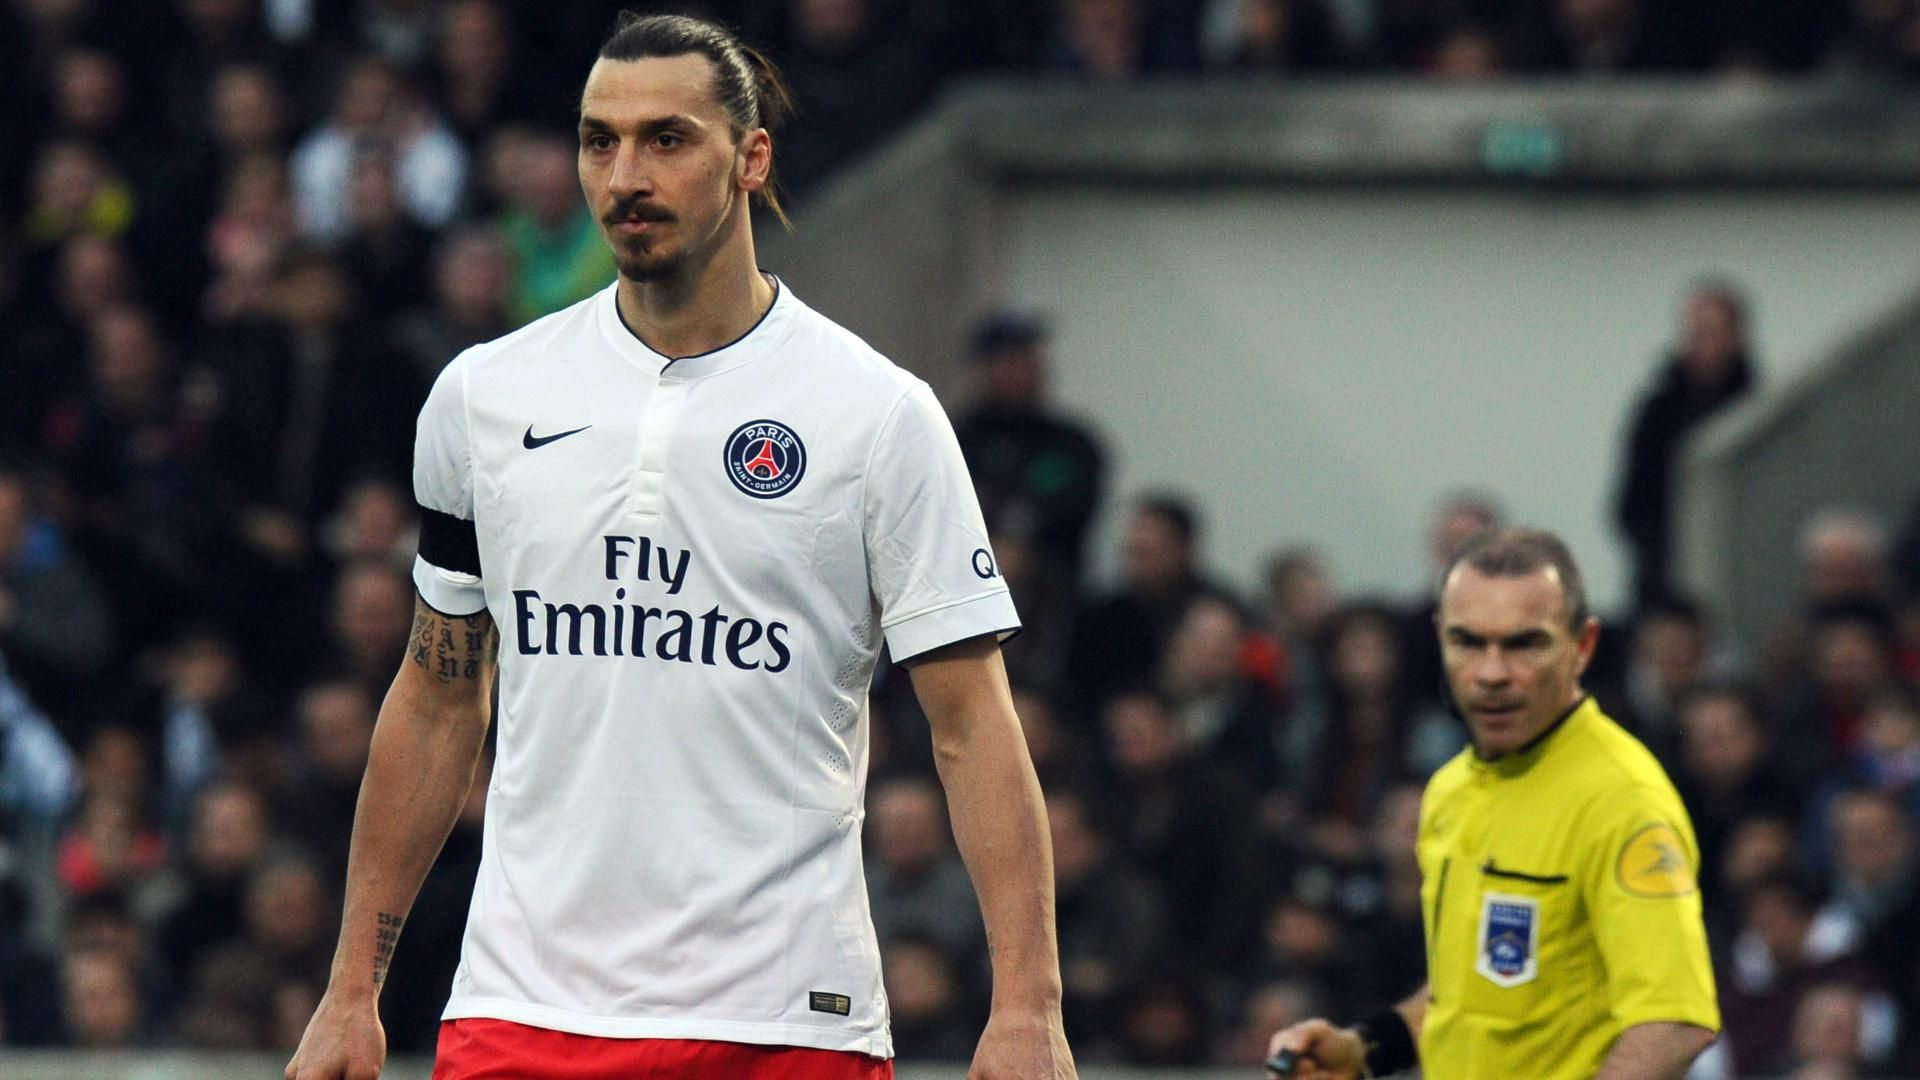 PSG's Zlatan Ibrahimovic suspended four games for comments to ref - ESPN FC